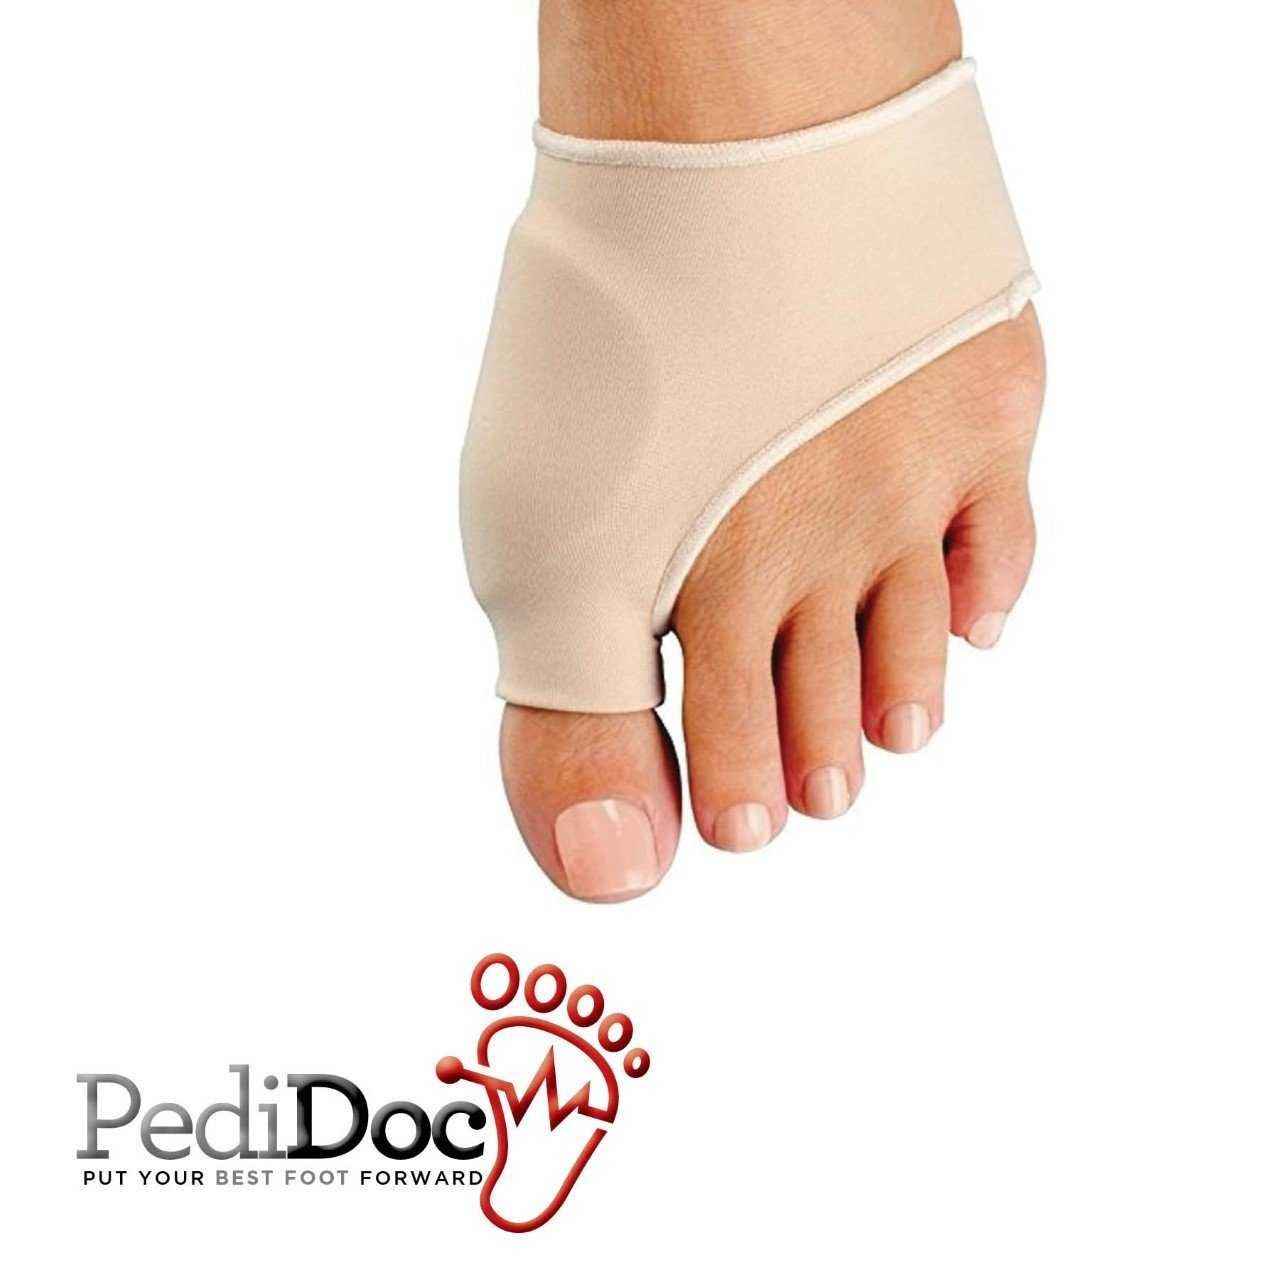 Bunion Corrector and Bunion Relief Sleeve with Gel Bunion Pads Cushion Bunion Protector – Bunion Bootie Provides Great Protection and Treatment for Hallux Valgus Bunion Pain (Medium)